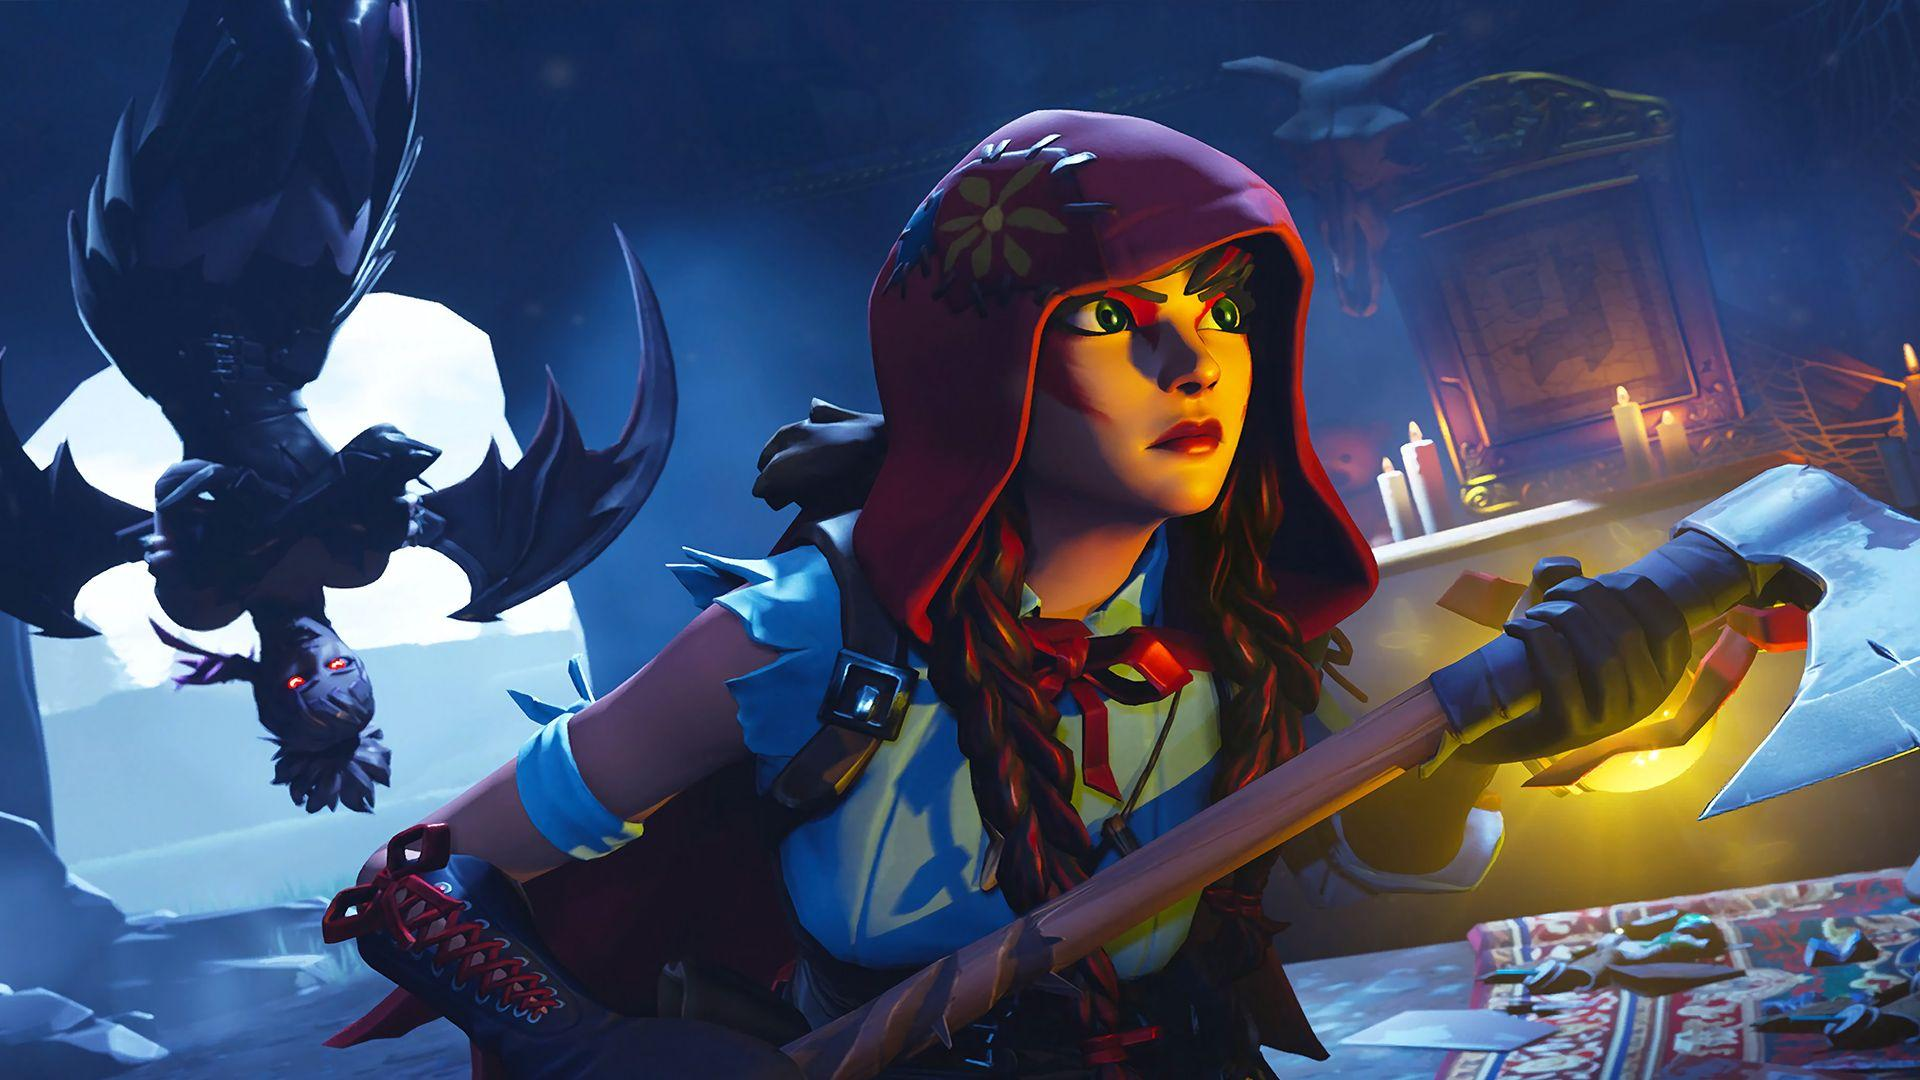 Fortnite's Fortnitemares event will begin on Oct. 24